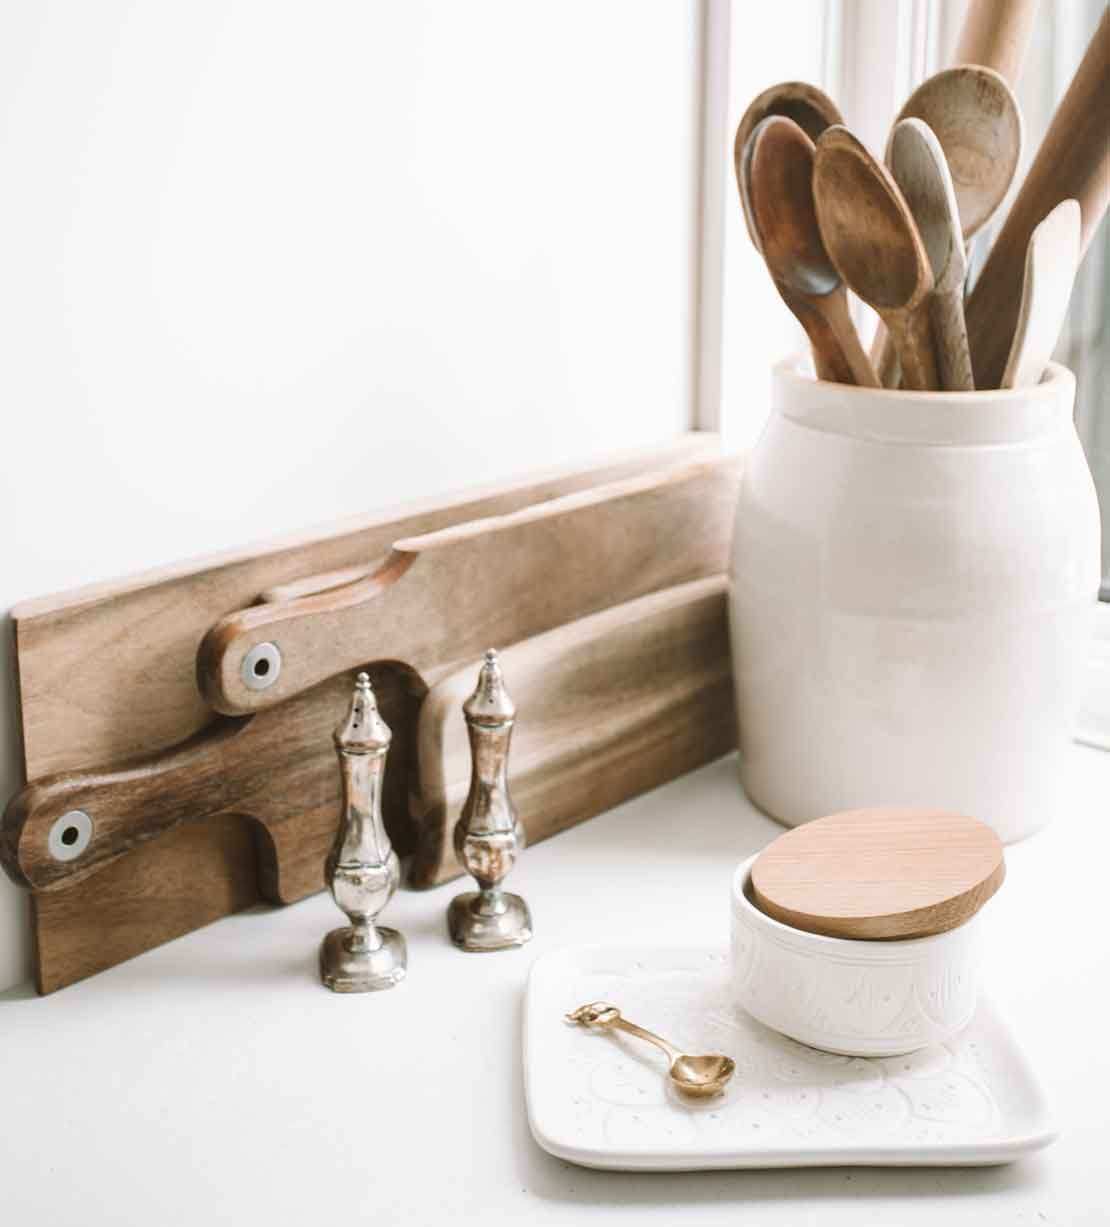 Take care of wooden kitchen utensils in 3 easy steps